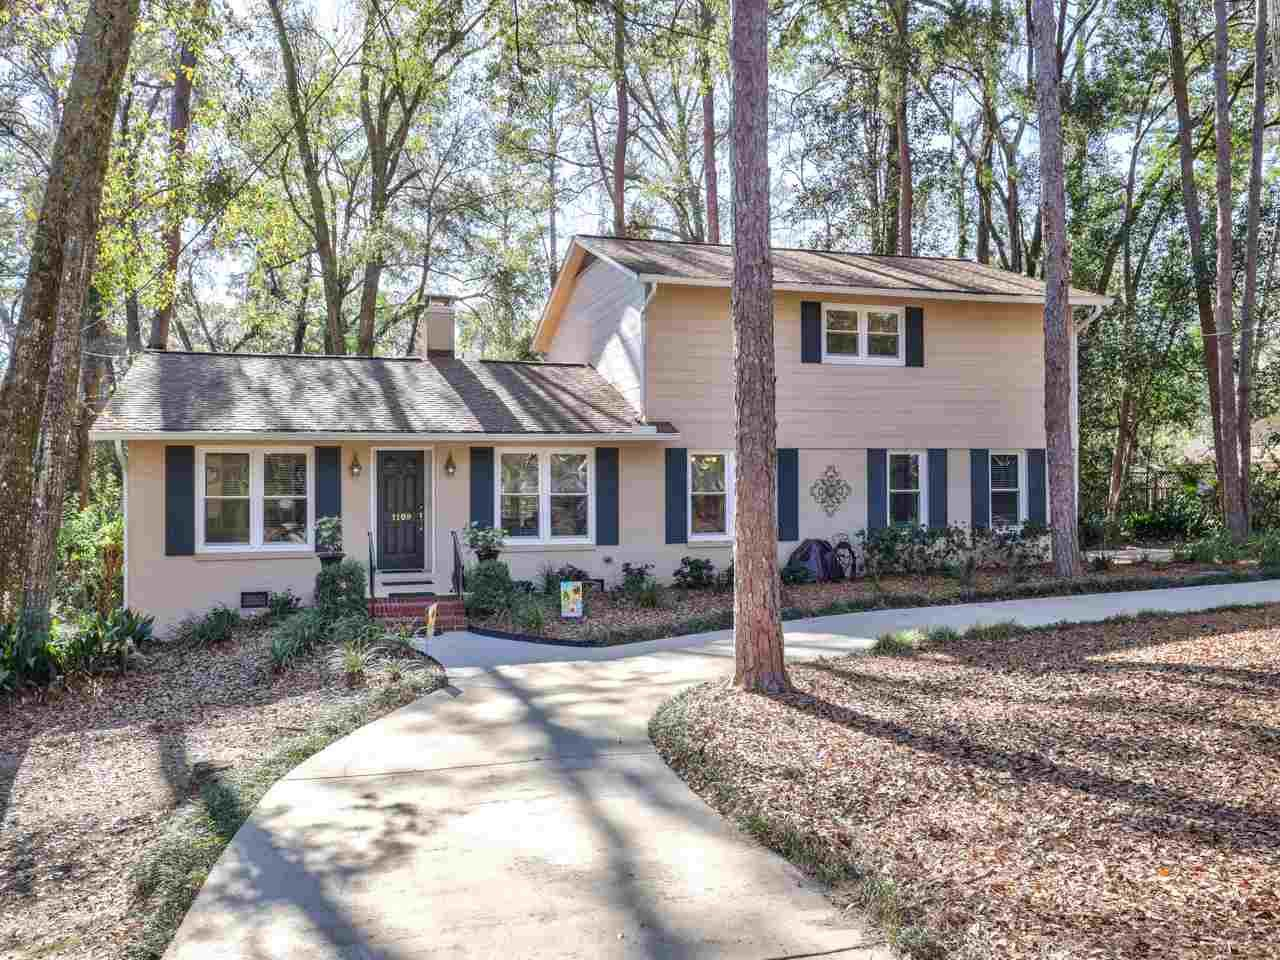 Photo of 1109 Lothian Drive, TALLAHASSEE, FL 32312 (MLS # 327393)